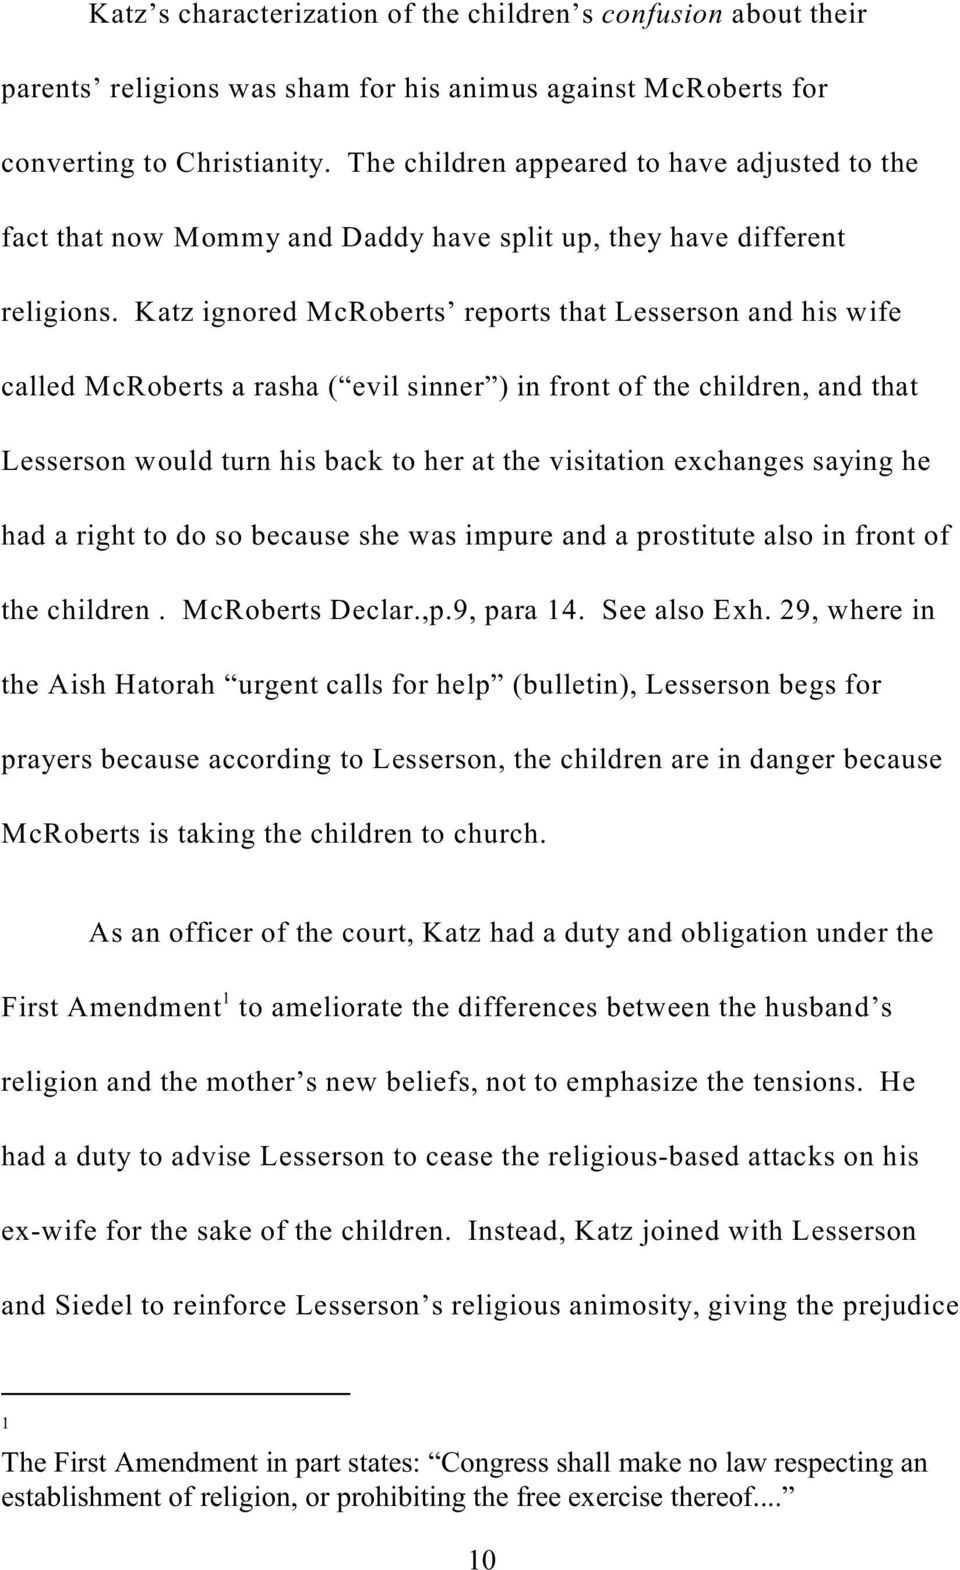 Katz ignored McRoberts reports that Lesserson and his wife called McRoberts a rasha ( evil sinner ) in front of the children, and that Lesserson would turn his back to her at the visitation exchanges